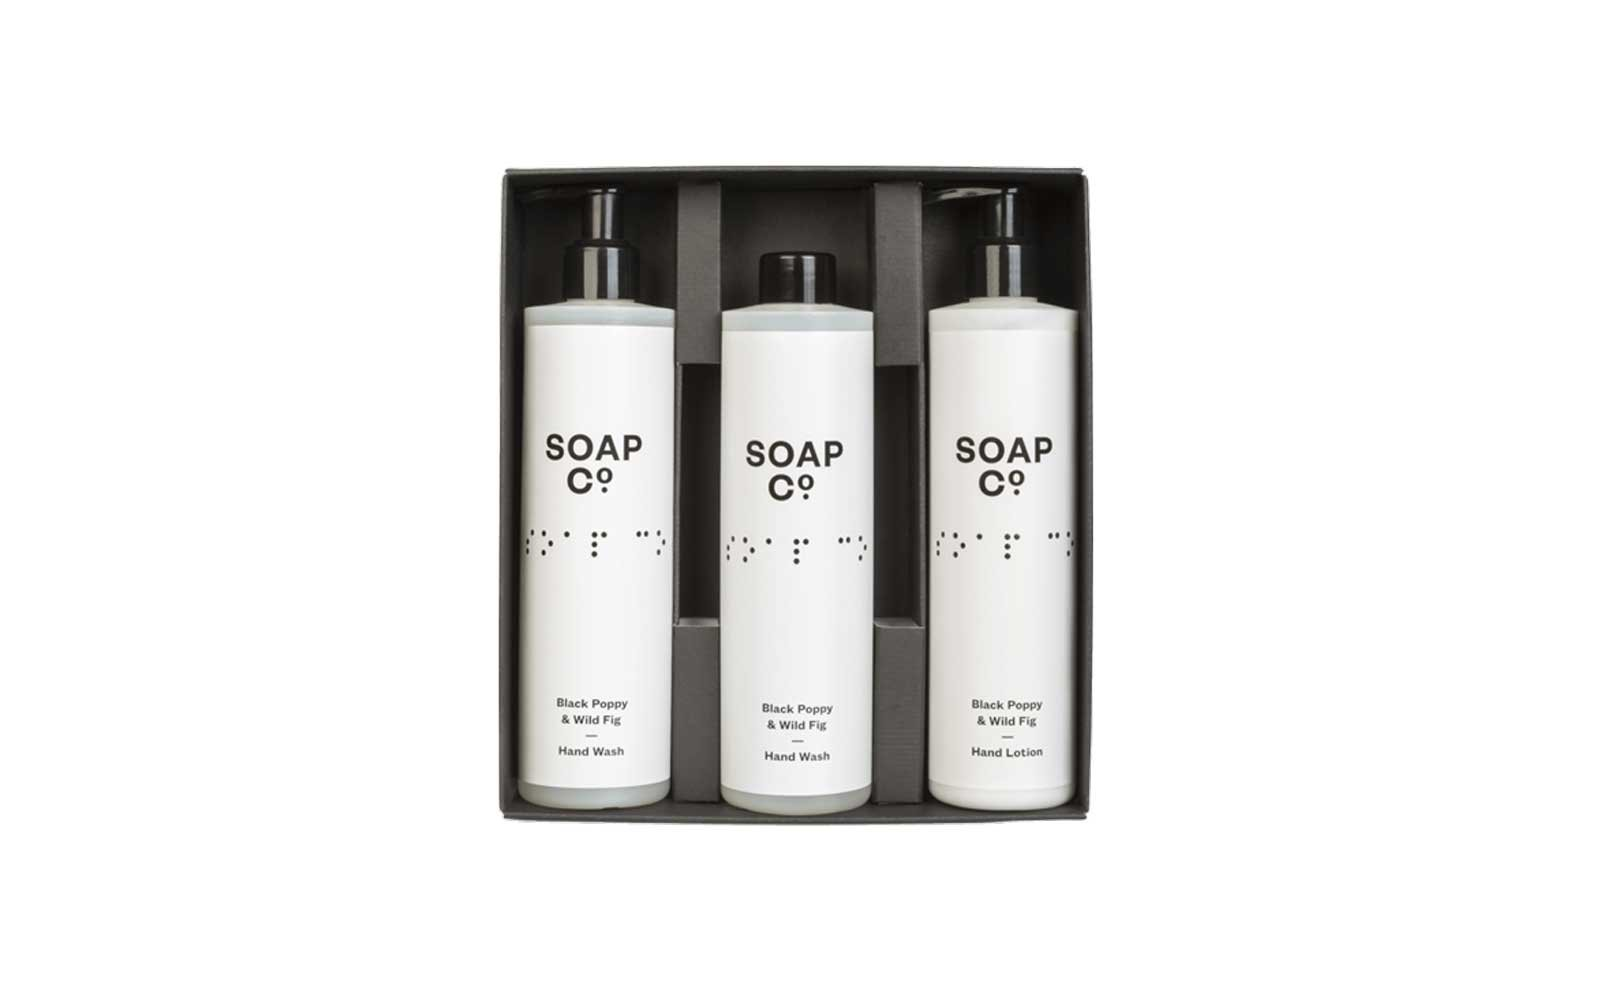 Soap Co's Black Poppy and Wild Fig Shower Gel Trio